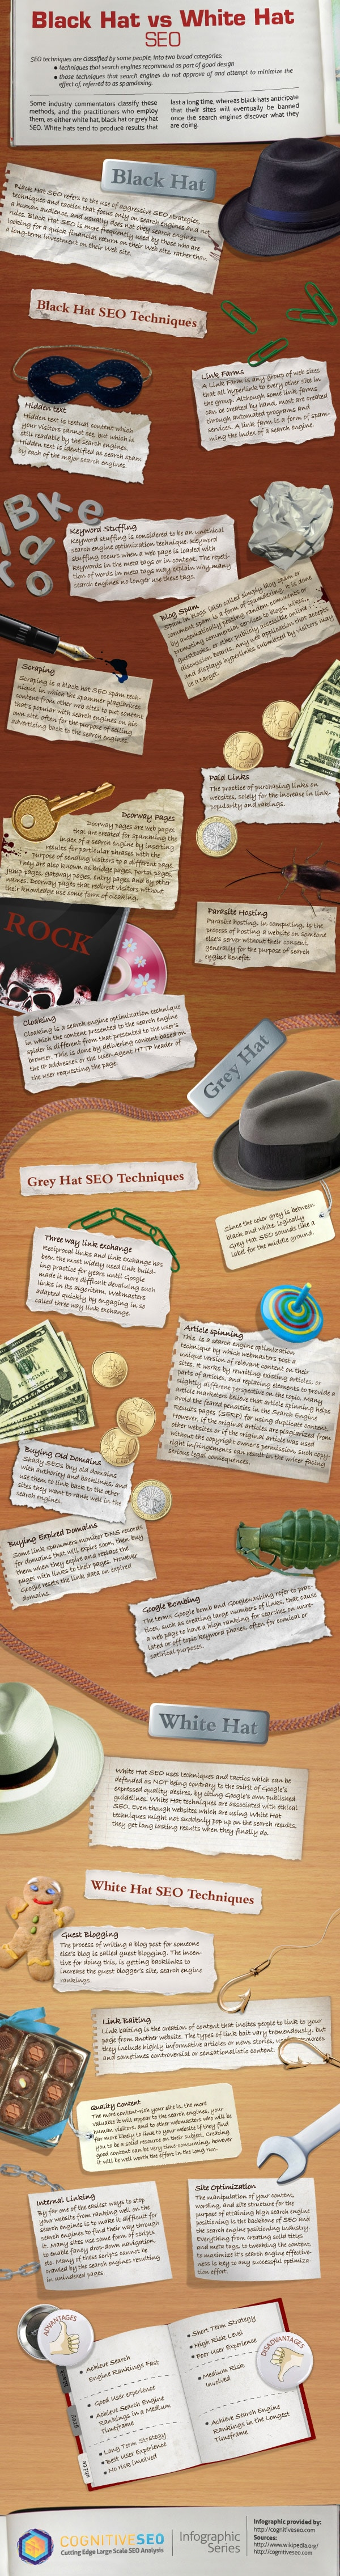 blackhat-whitehat-seo-tactics-infographic